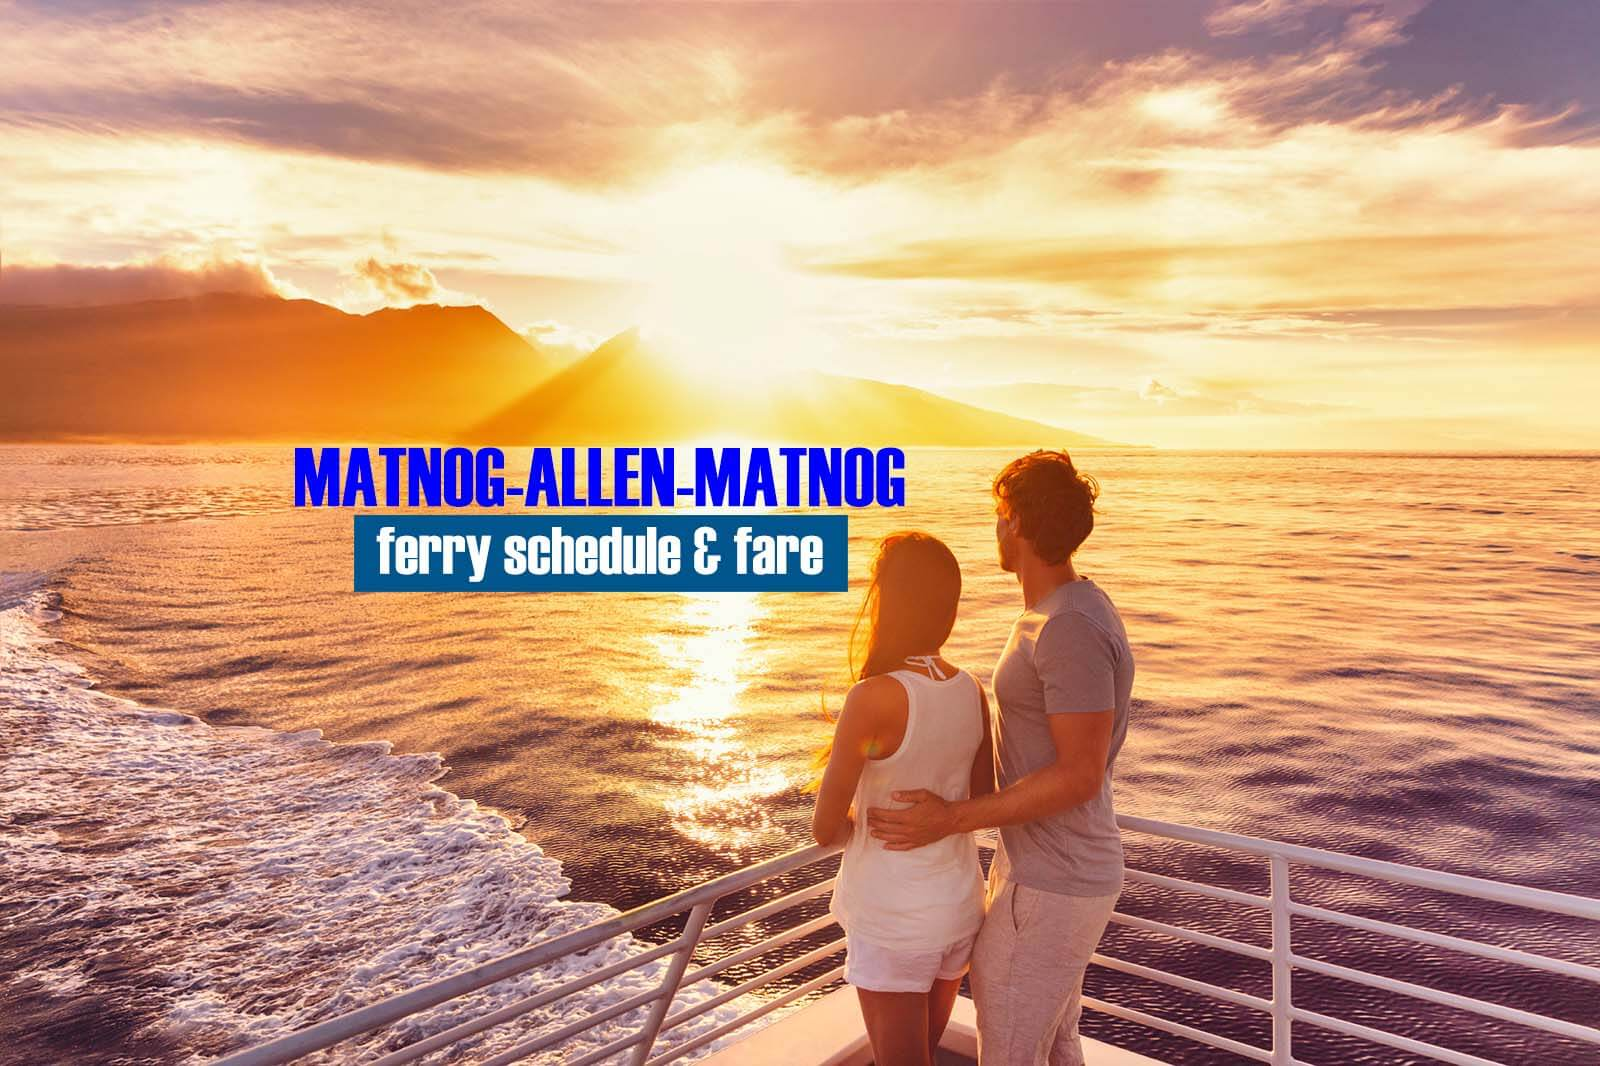 Matnog to Allen: 2020 Ferry Schedule and Fare Rates